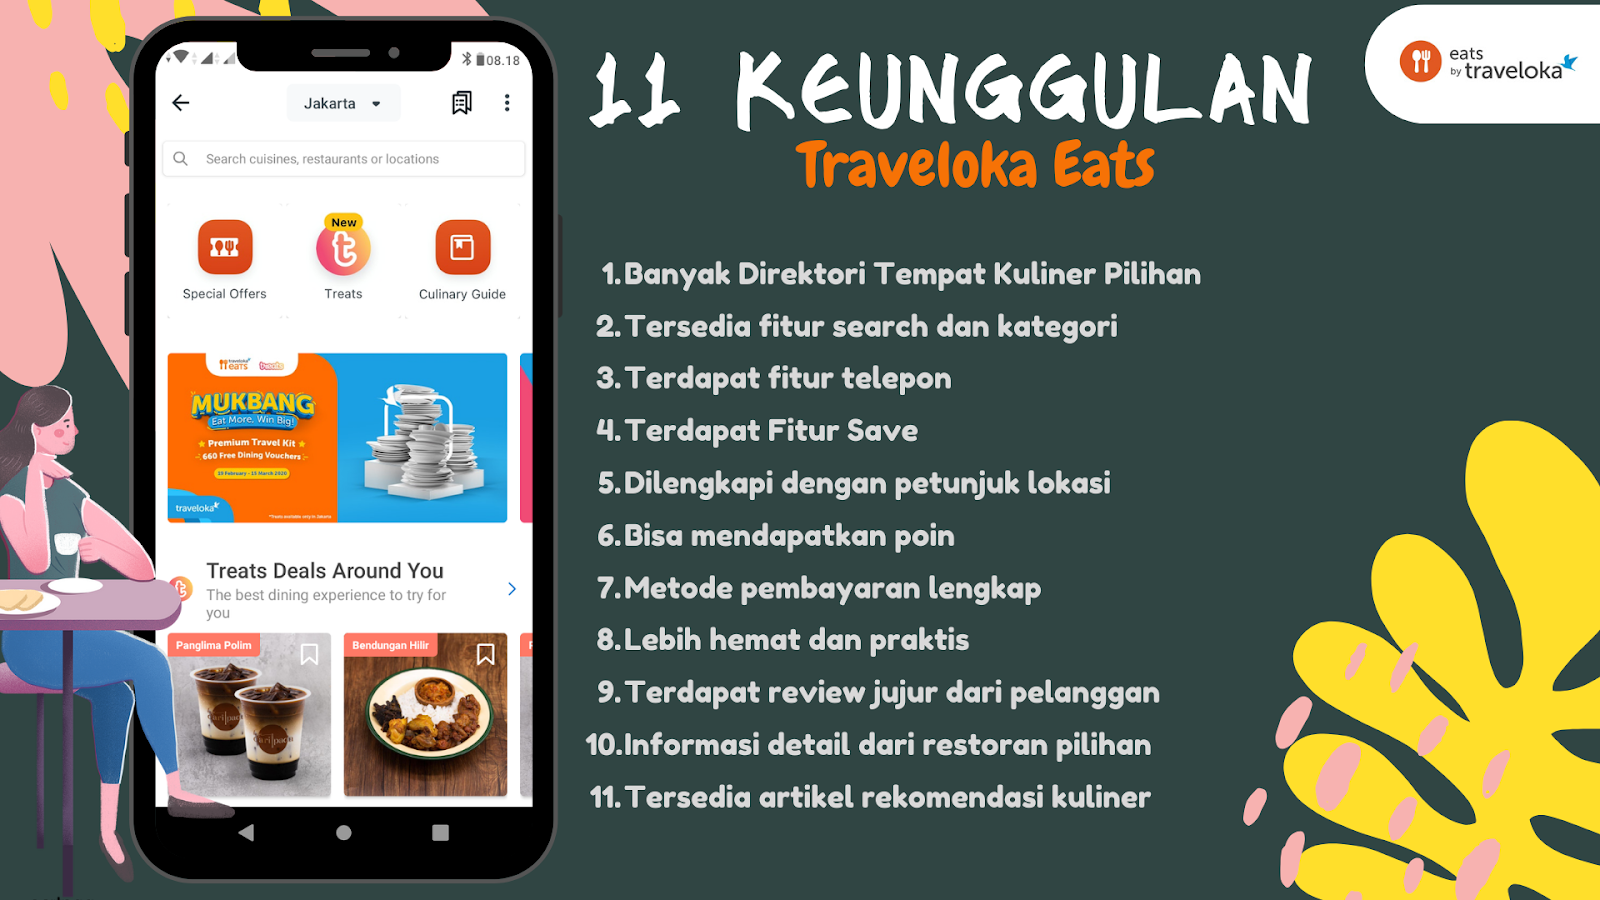 Keunggulan Traveloka Eats